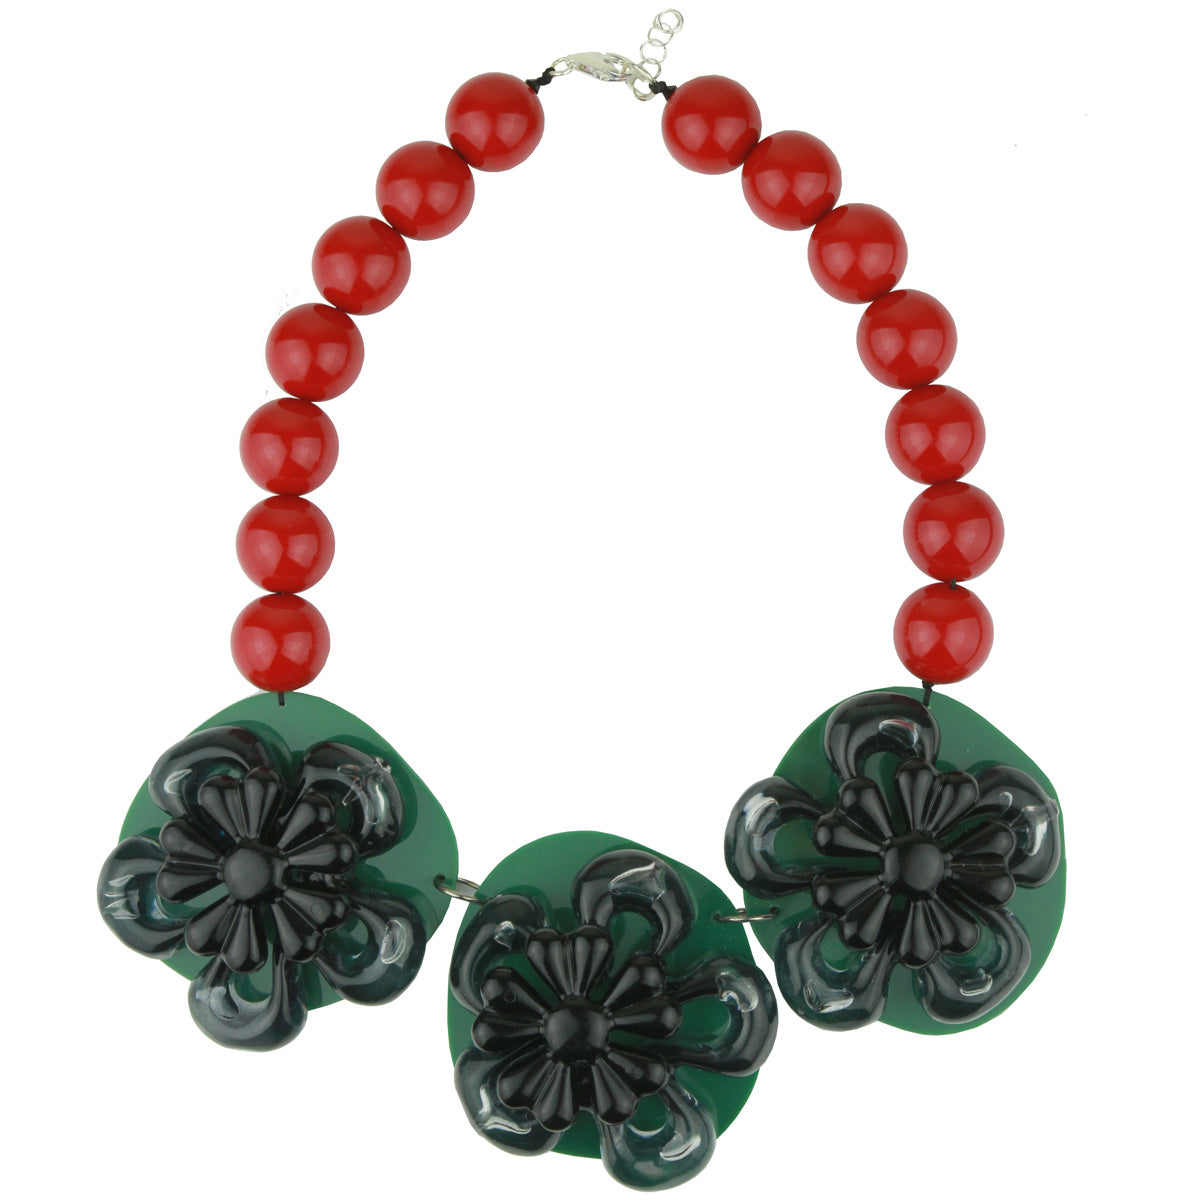 Rena Green Acrylic Necklace with Flower and Colored Beads